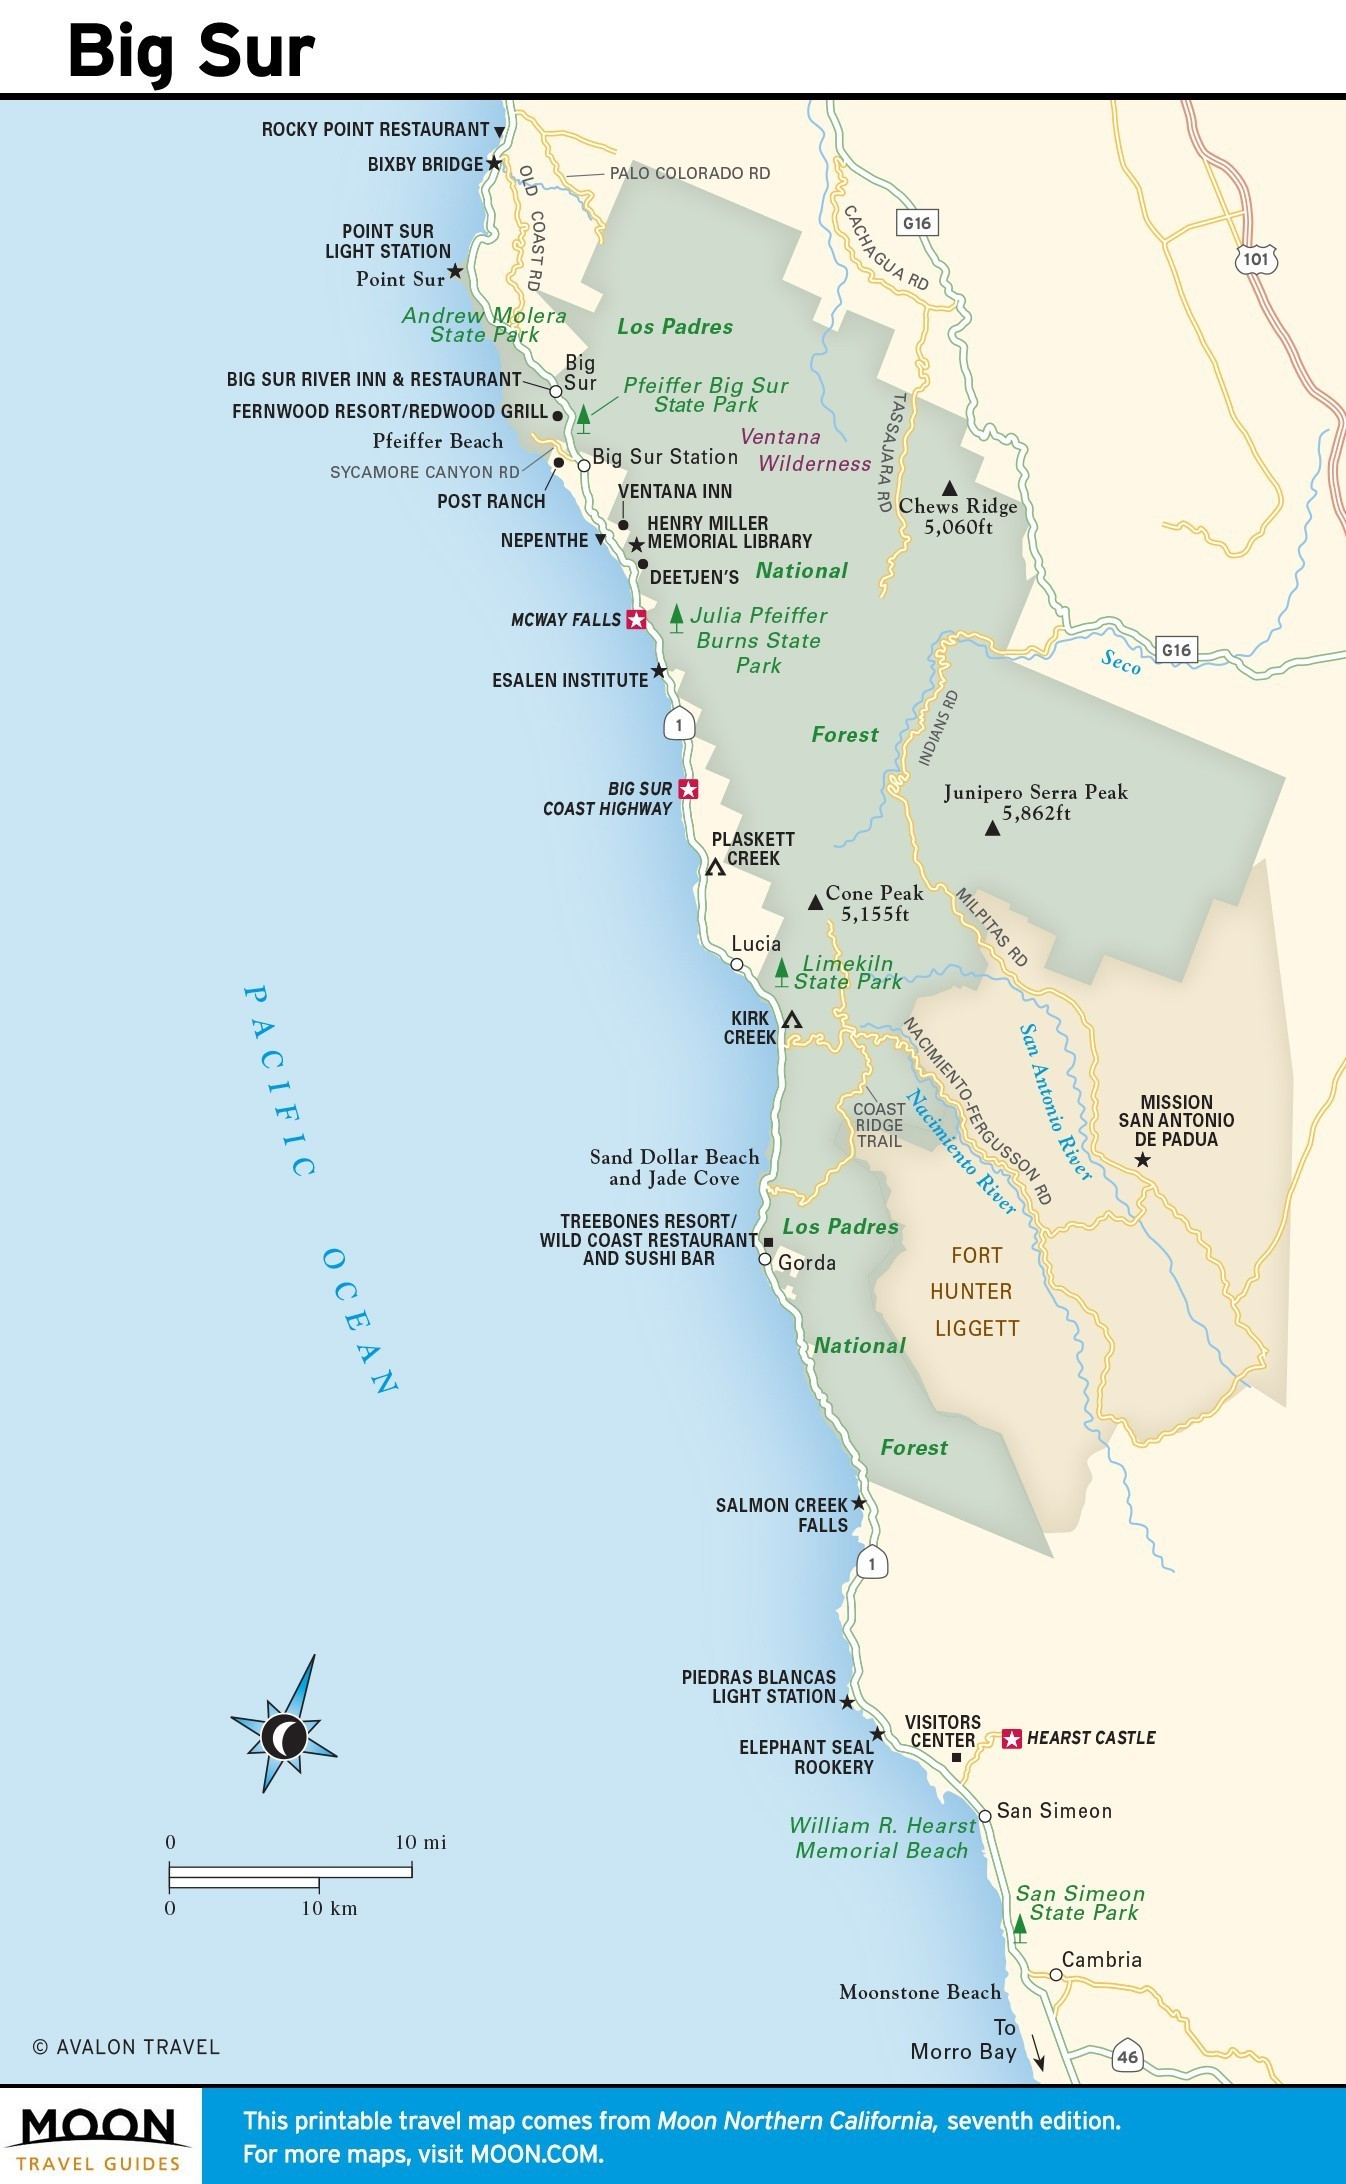 Map Of Us West Coast Seattle Pacific Coast 5 Awesome Us East Coast - Seattle To California Road Trip Map